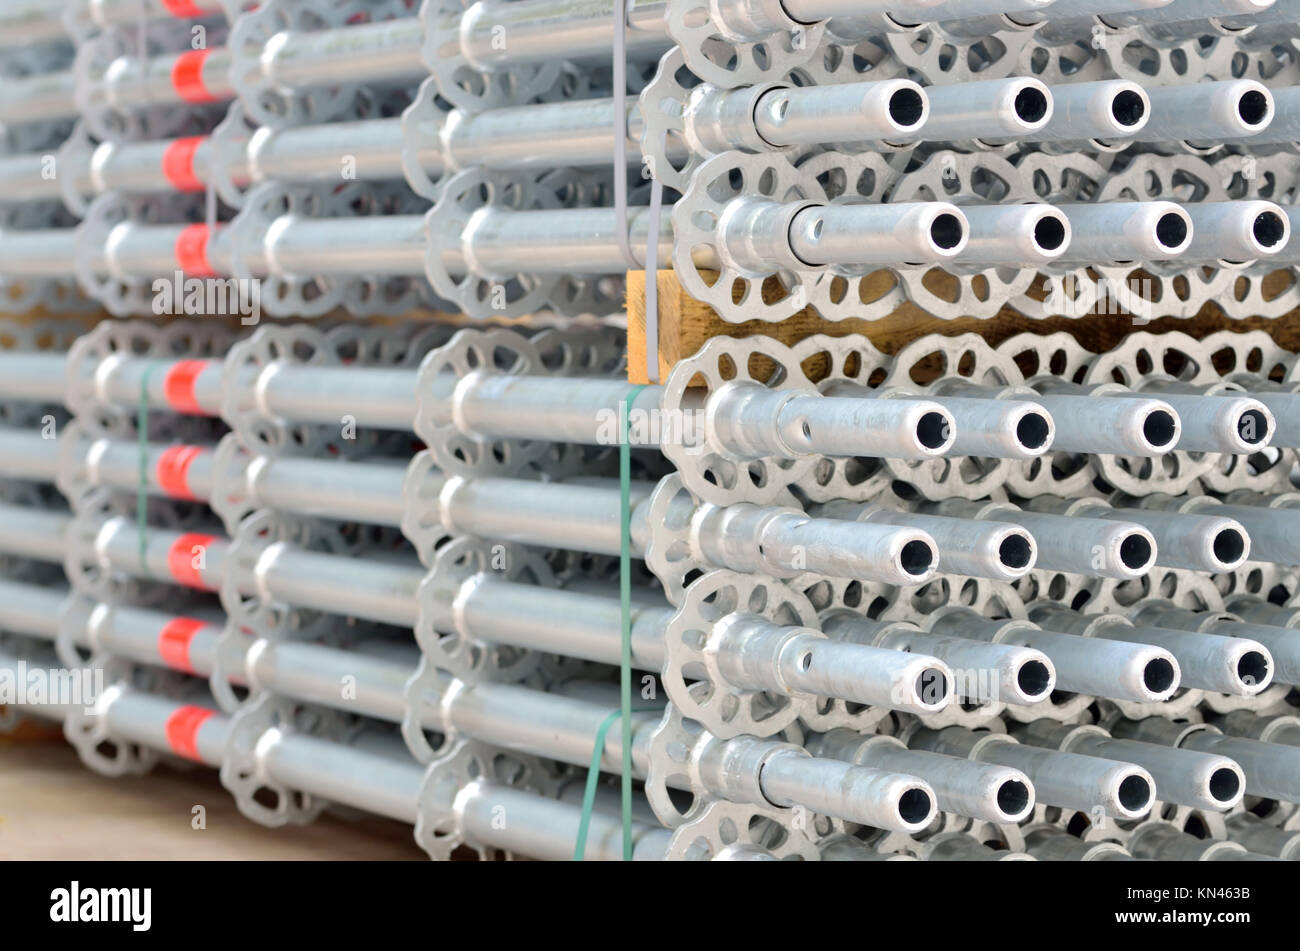 Details Stack Of Scaffolding For Construction.   Stock Image